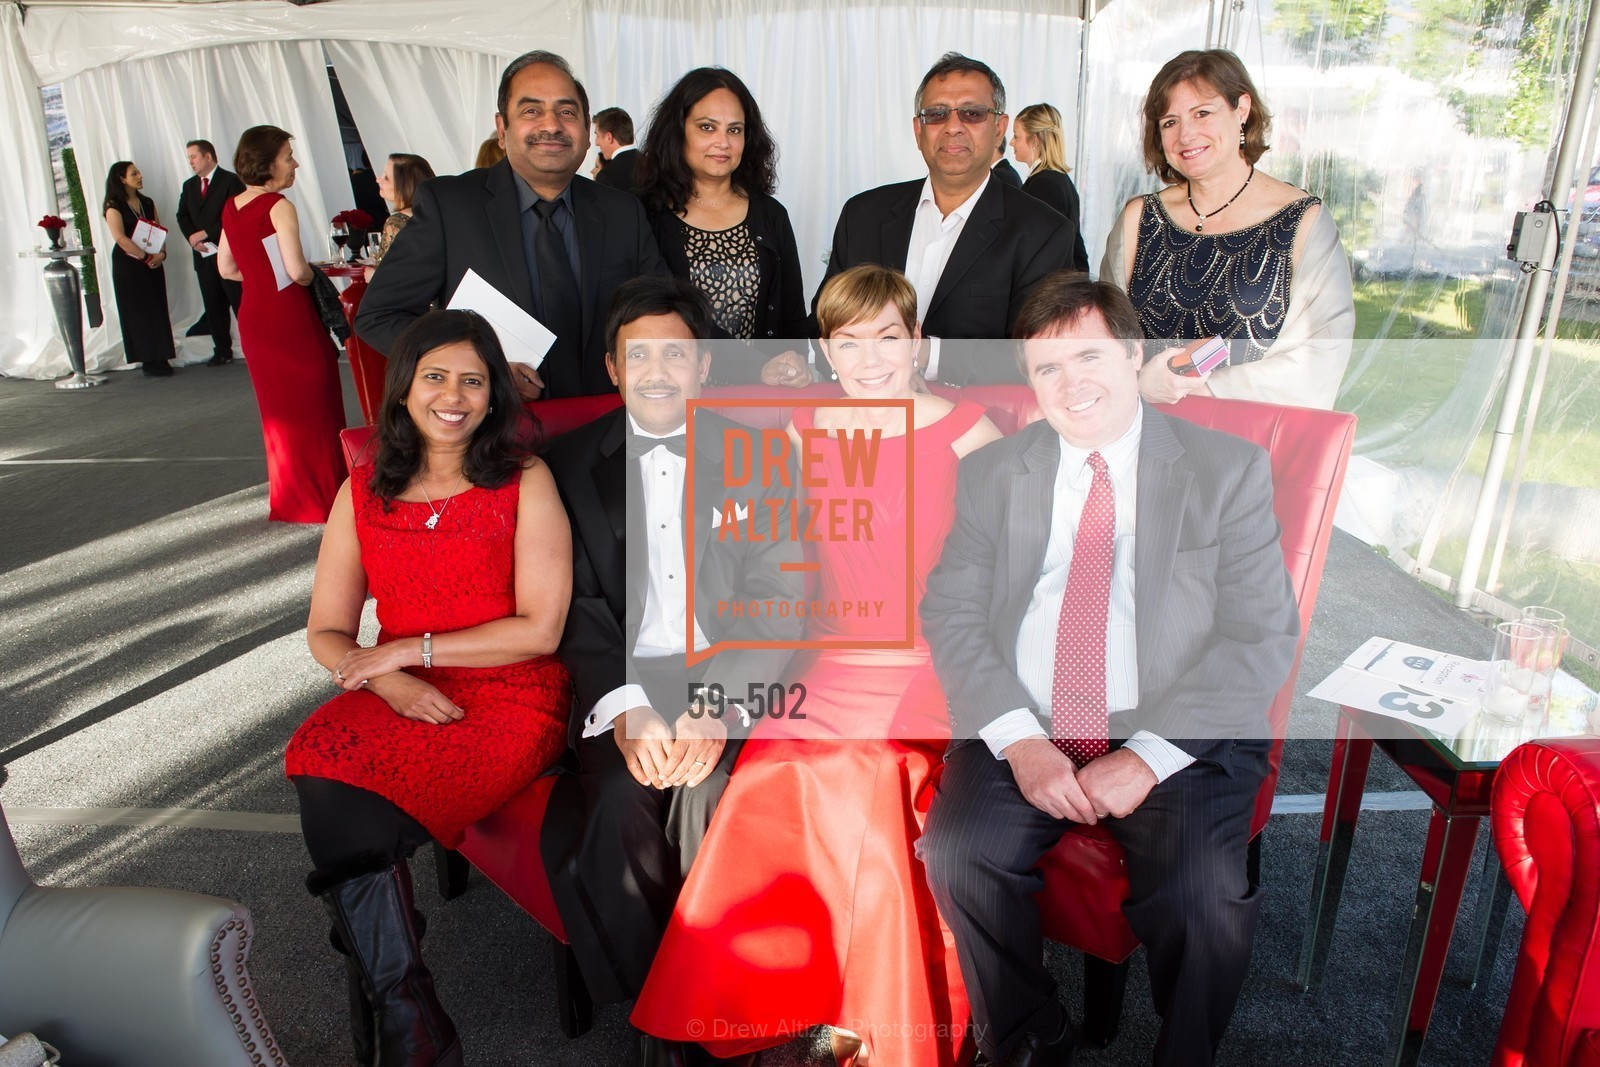 Radha Katta, Sagar Anisingaraju, Suresh Katta, Latha Anisingaraju, Paula Downey, Sanjeev Kumar, Philip Dodsdon, Michelle Dodsdon, 2014 RED CROSS Gala Honoring Paula Downey as the American Red Cross Bay Area Chapter Humanitarian CEO of the Year, US. Treasure Island (The Great Lawn), April 5th, 2014,Drew Altizer, Drew Altizer Photography, full-service event agency, private events, San Francisco photographer, photographer California